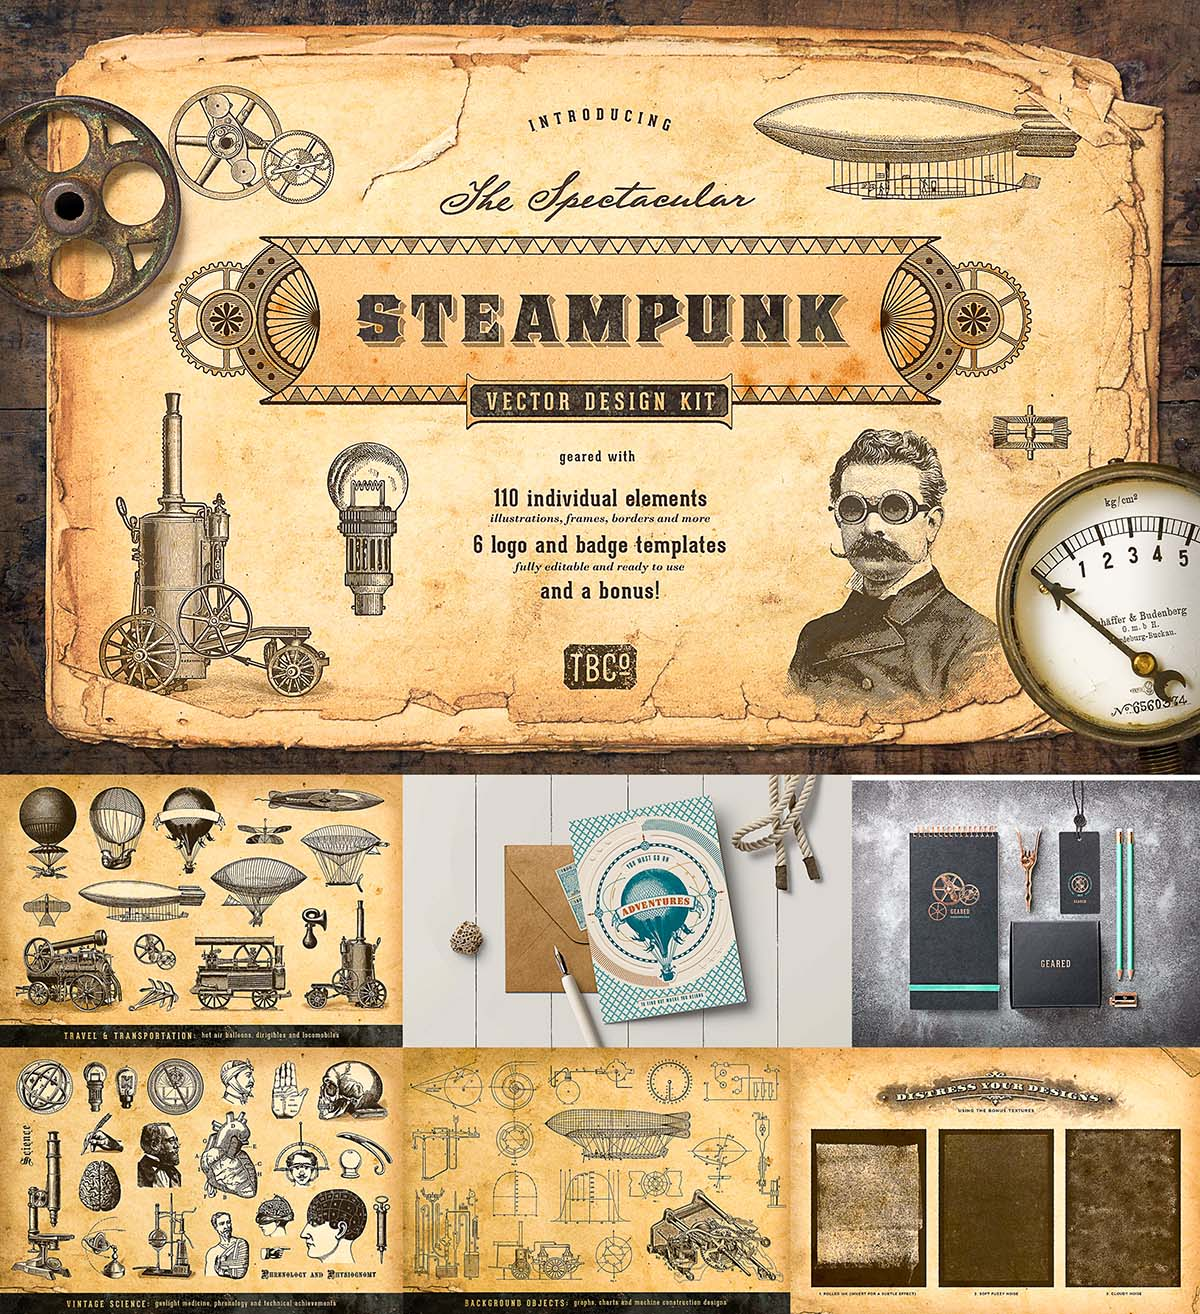 The Steampunk Vector Design Kit Free Download